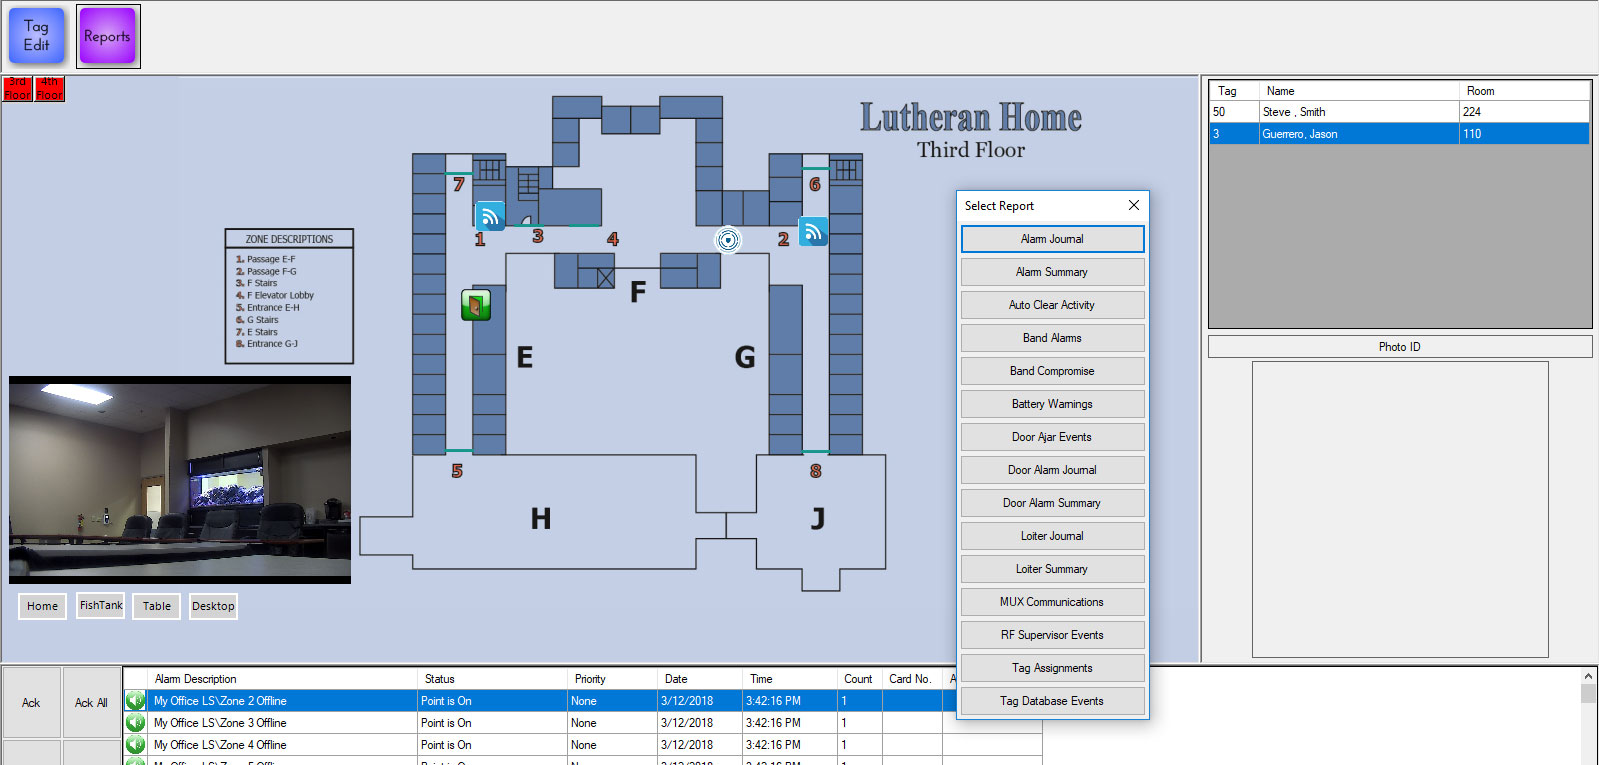 Customized community floor plan with event notification and reporting